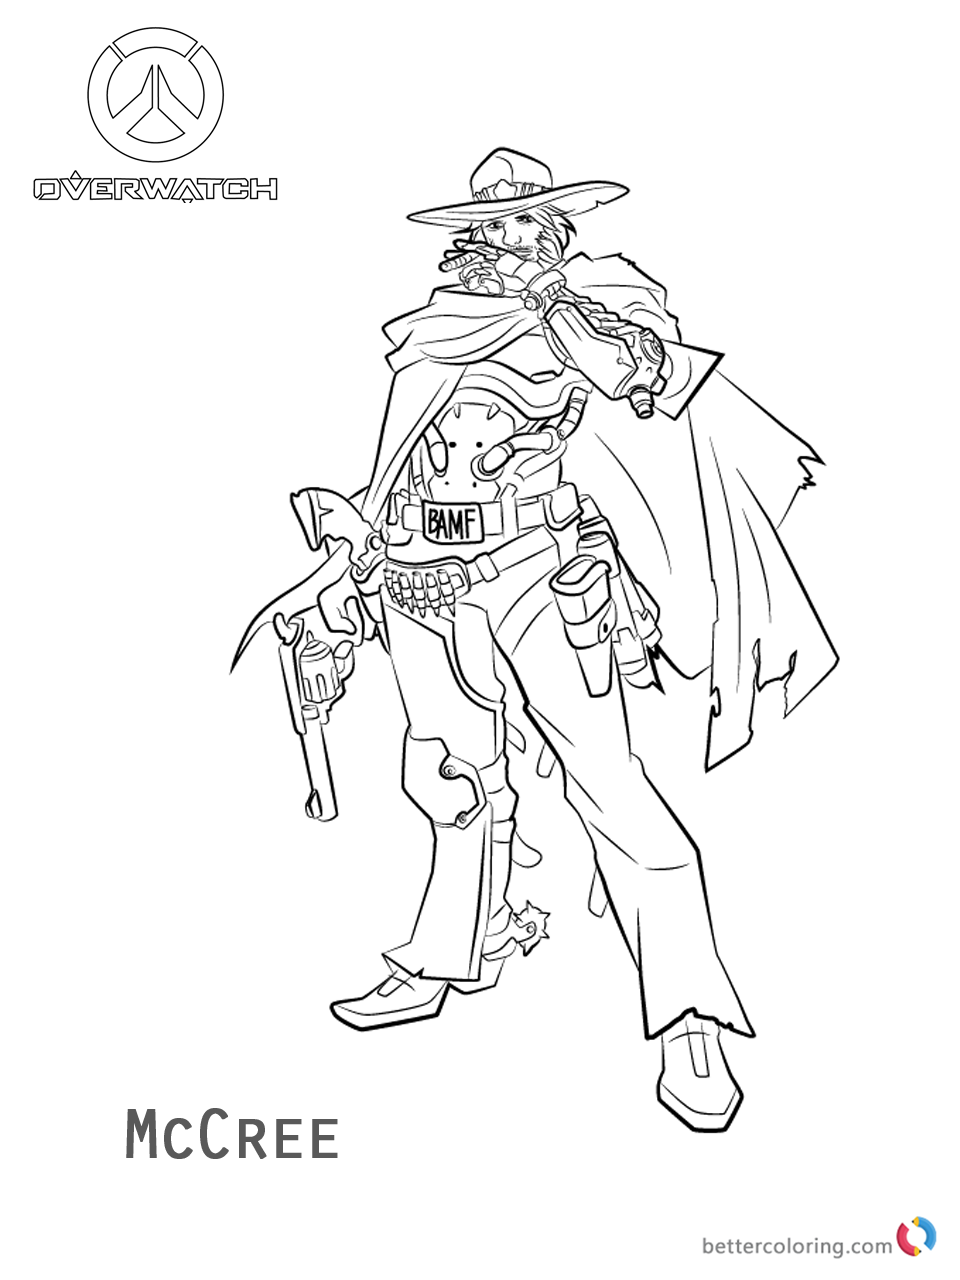 McCree from Overwatch Coloring